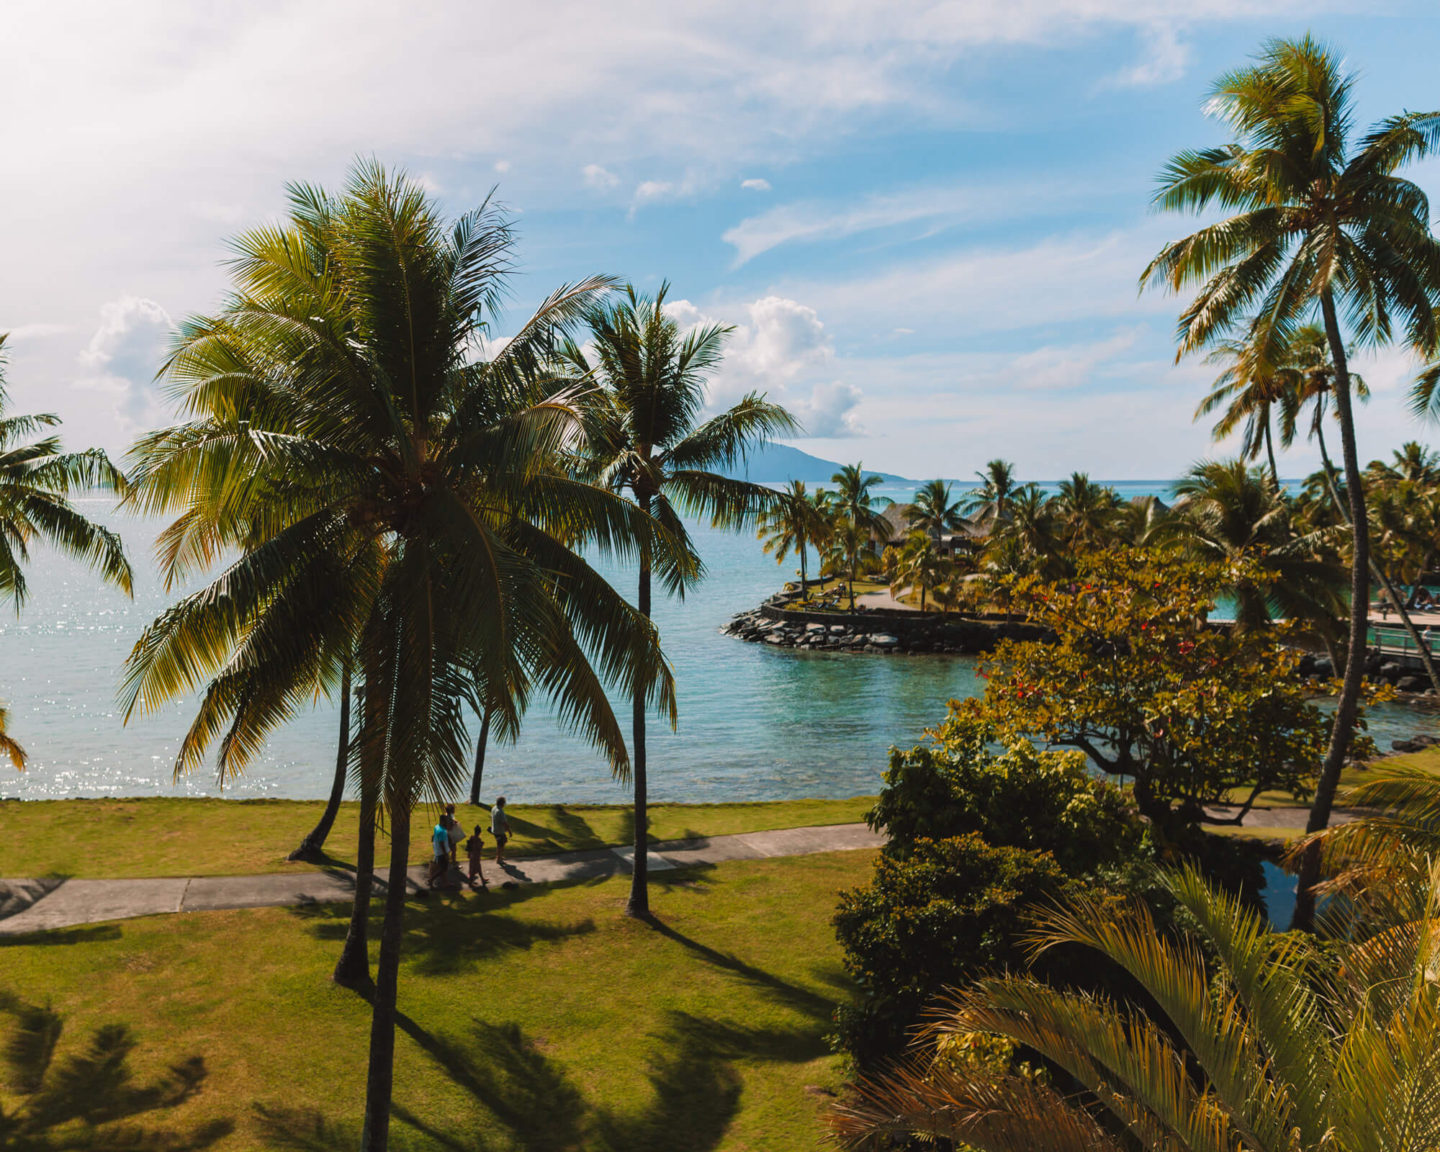 the view of moorea and the intercontinental resort from the panoramic lagoon view room